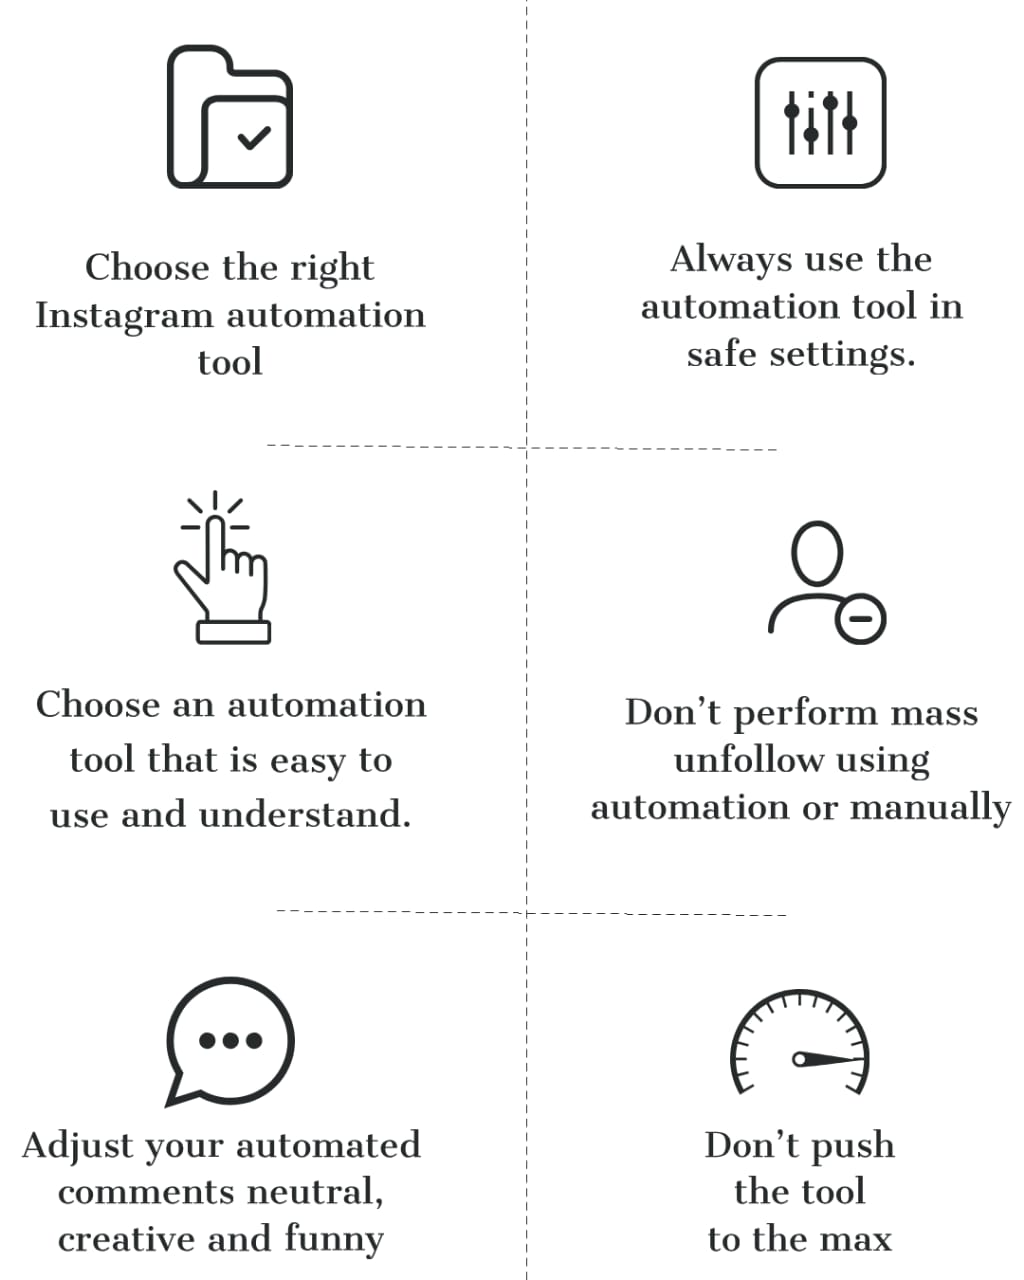 how to use instagram automation tool